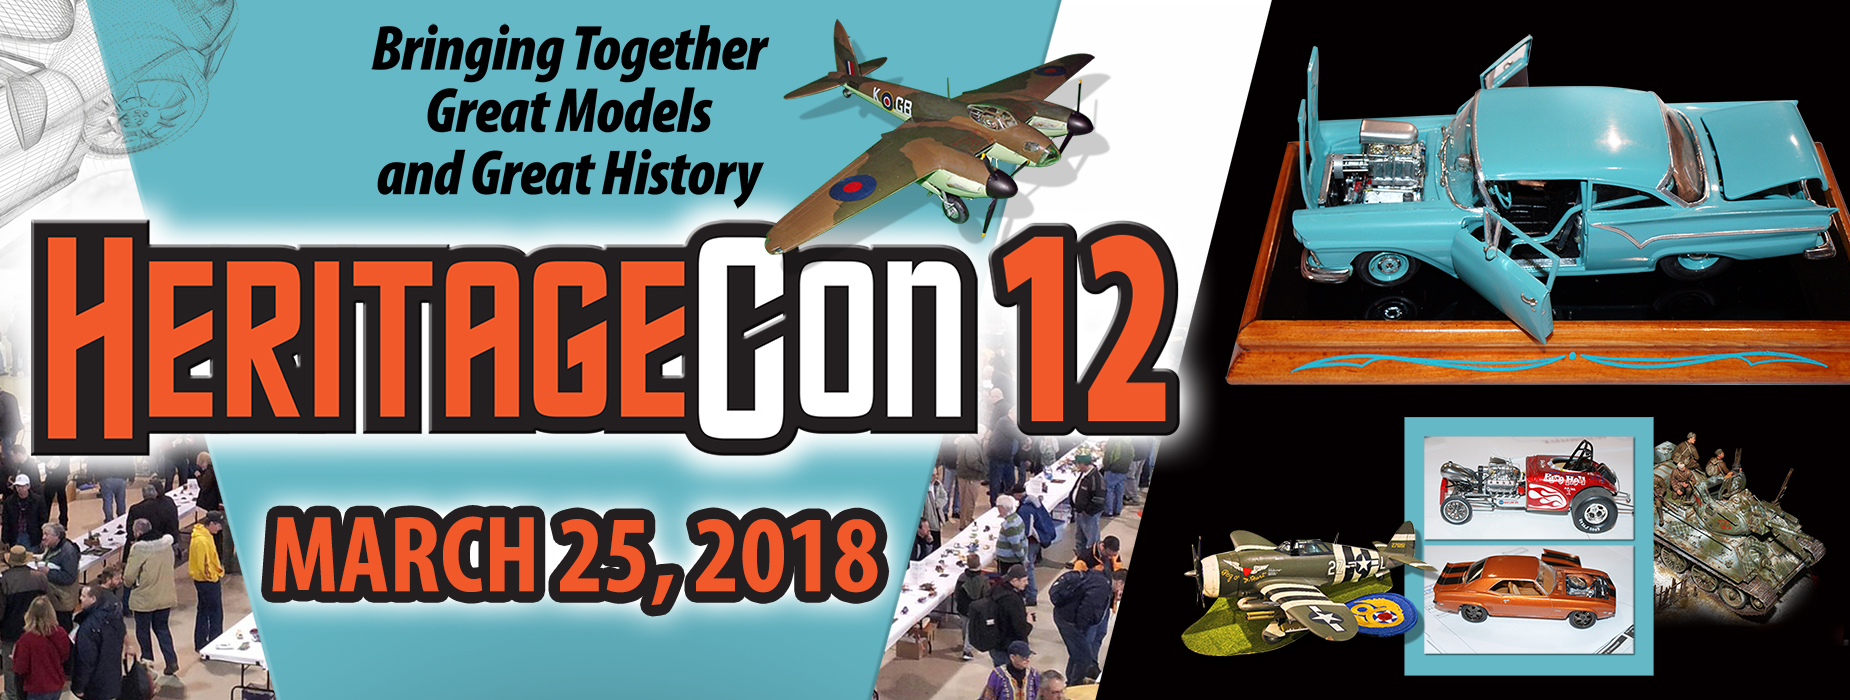 Banner Image for the HeritageCon12 event